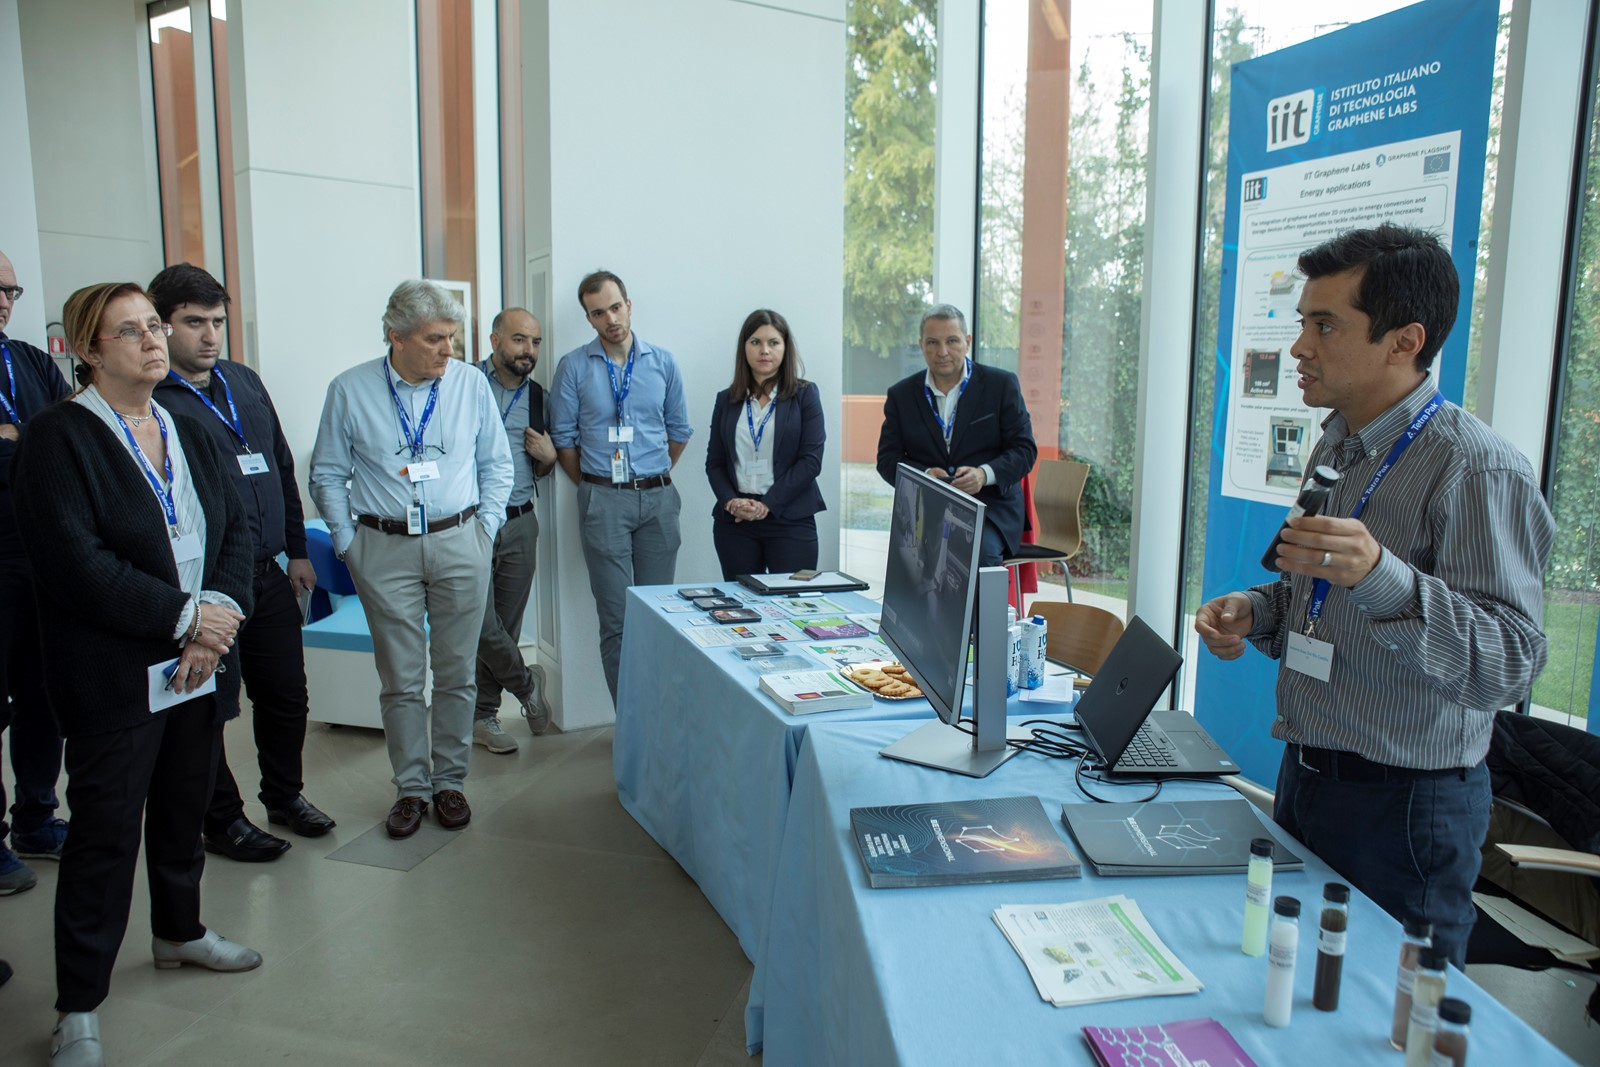 An exhibition of graphene products and prototypes was held at the Graphene Flagship's Tetra Pak Marketplace event